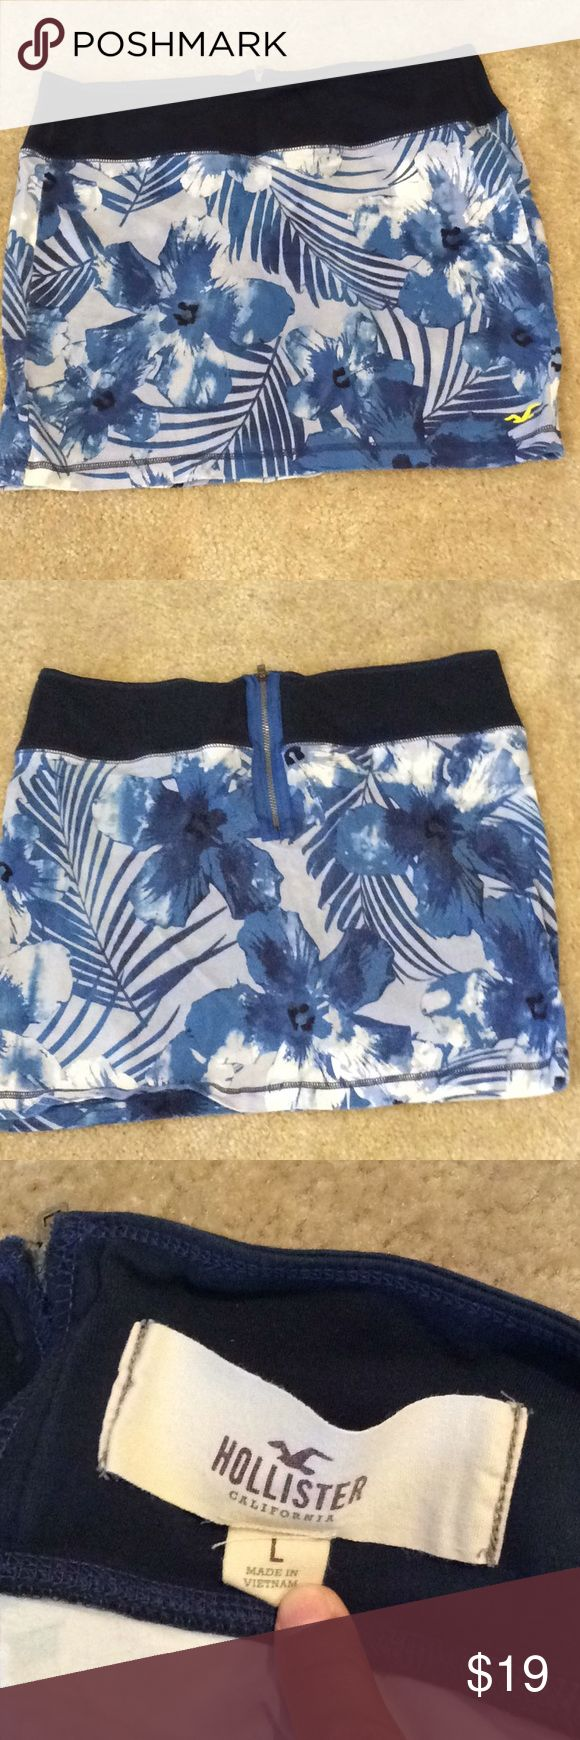 Hollister skirt Super stretchy and comfortable Hollister skirt. Has a nice half zipper I'm the back. Perfect to wear with a tank top or body suit. Hollister Skirts Mini